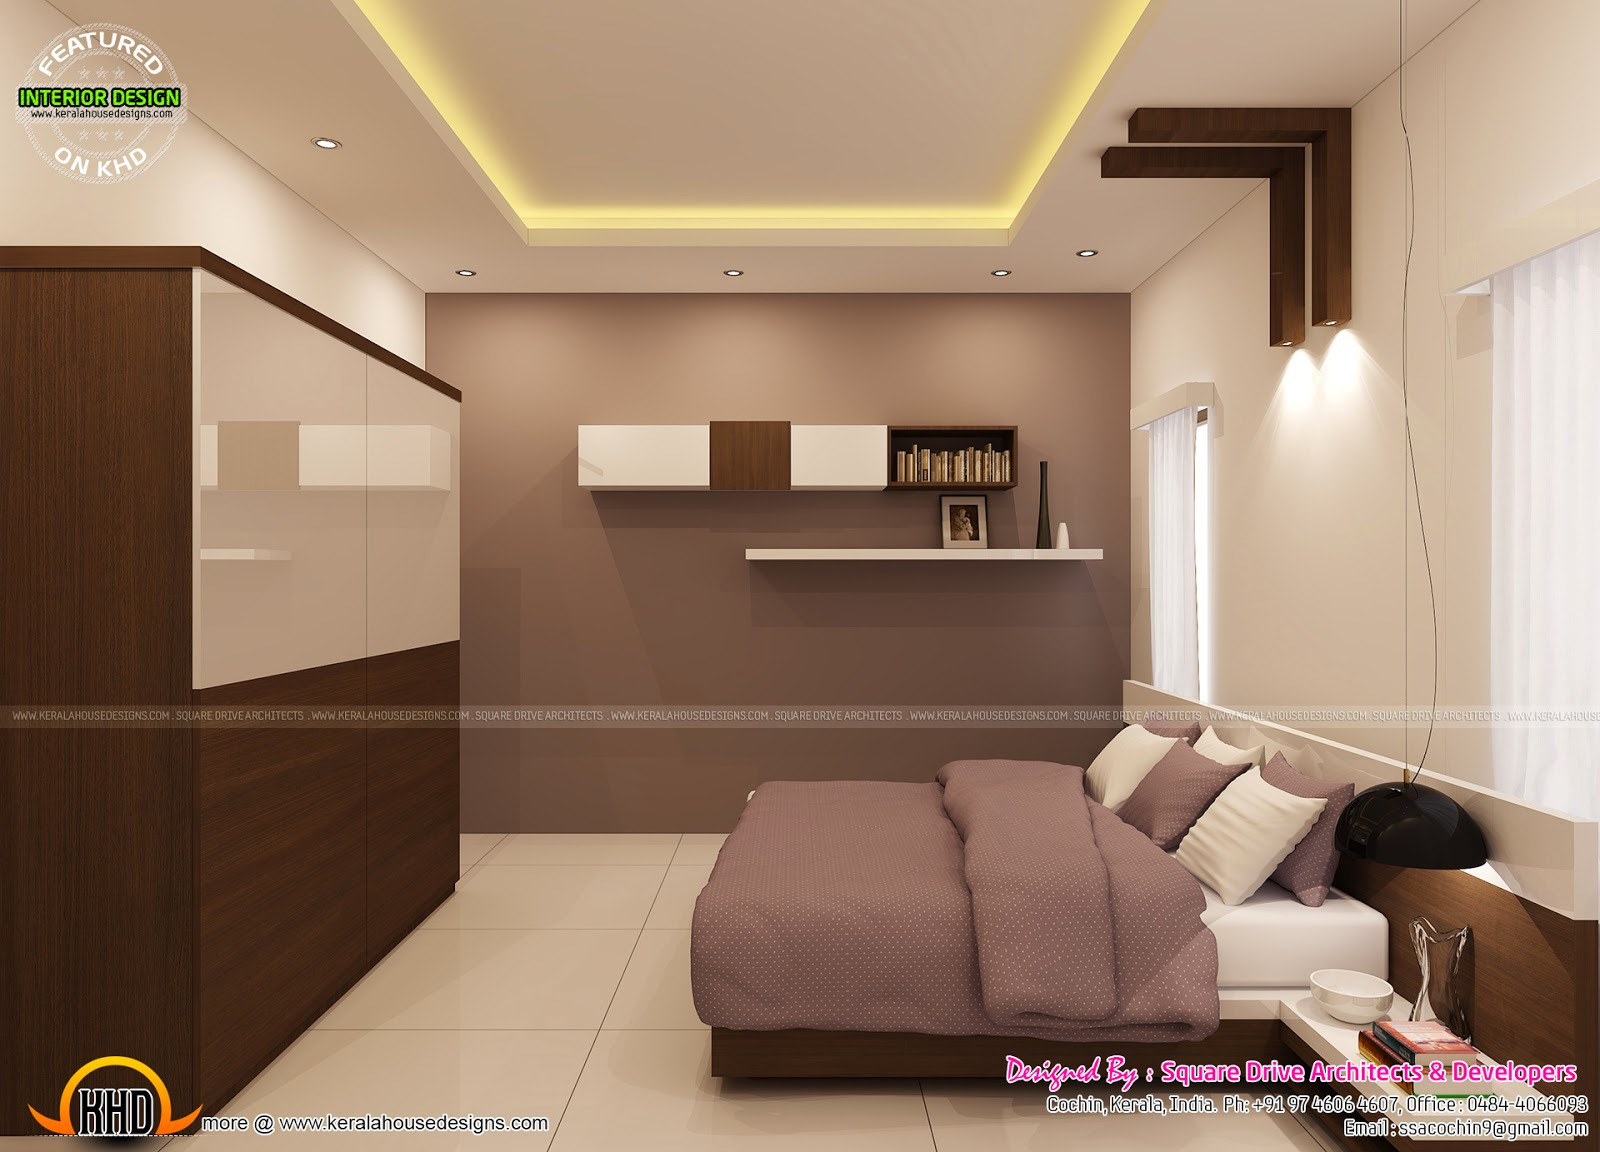 Bedroom interior decoration kerala home design and floor for House interior design bedroom